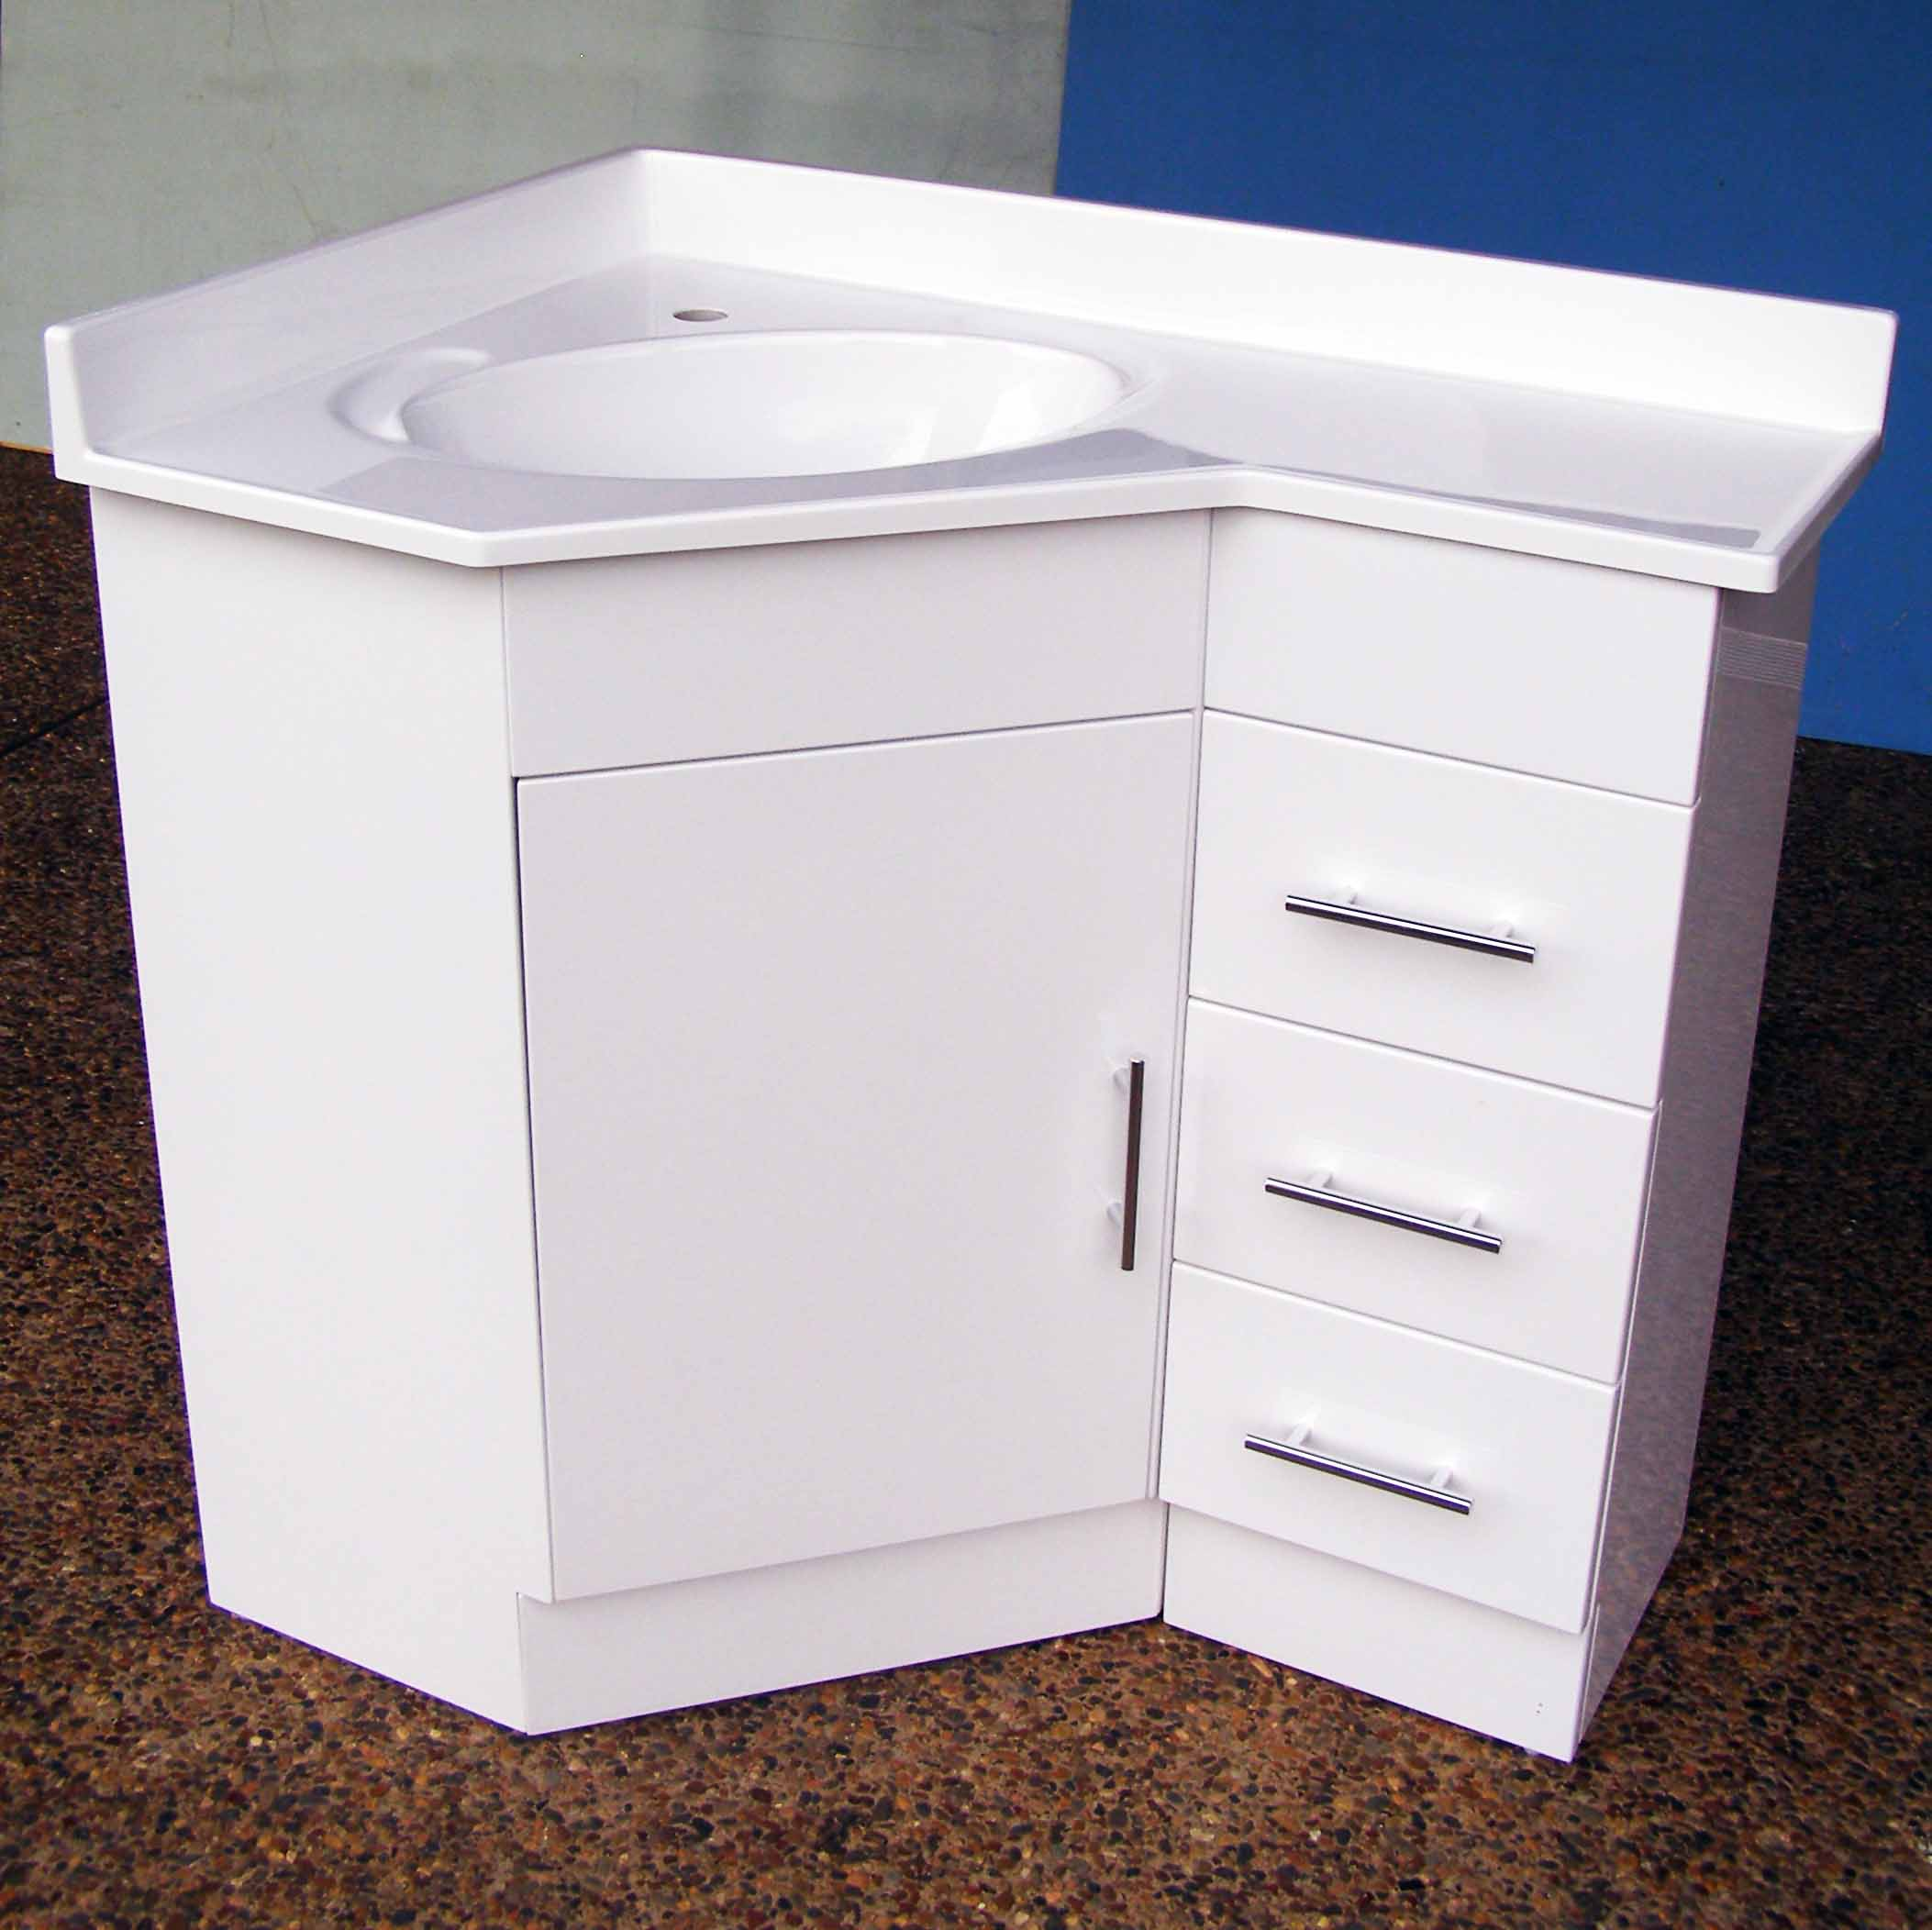 Small Bathroom Designs 2013 Corner Vanity 690r 610x910mm Polyurethane Corner Vanity